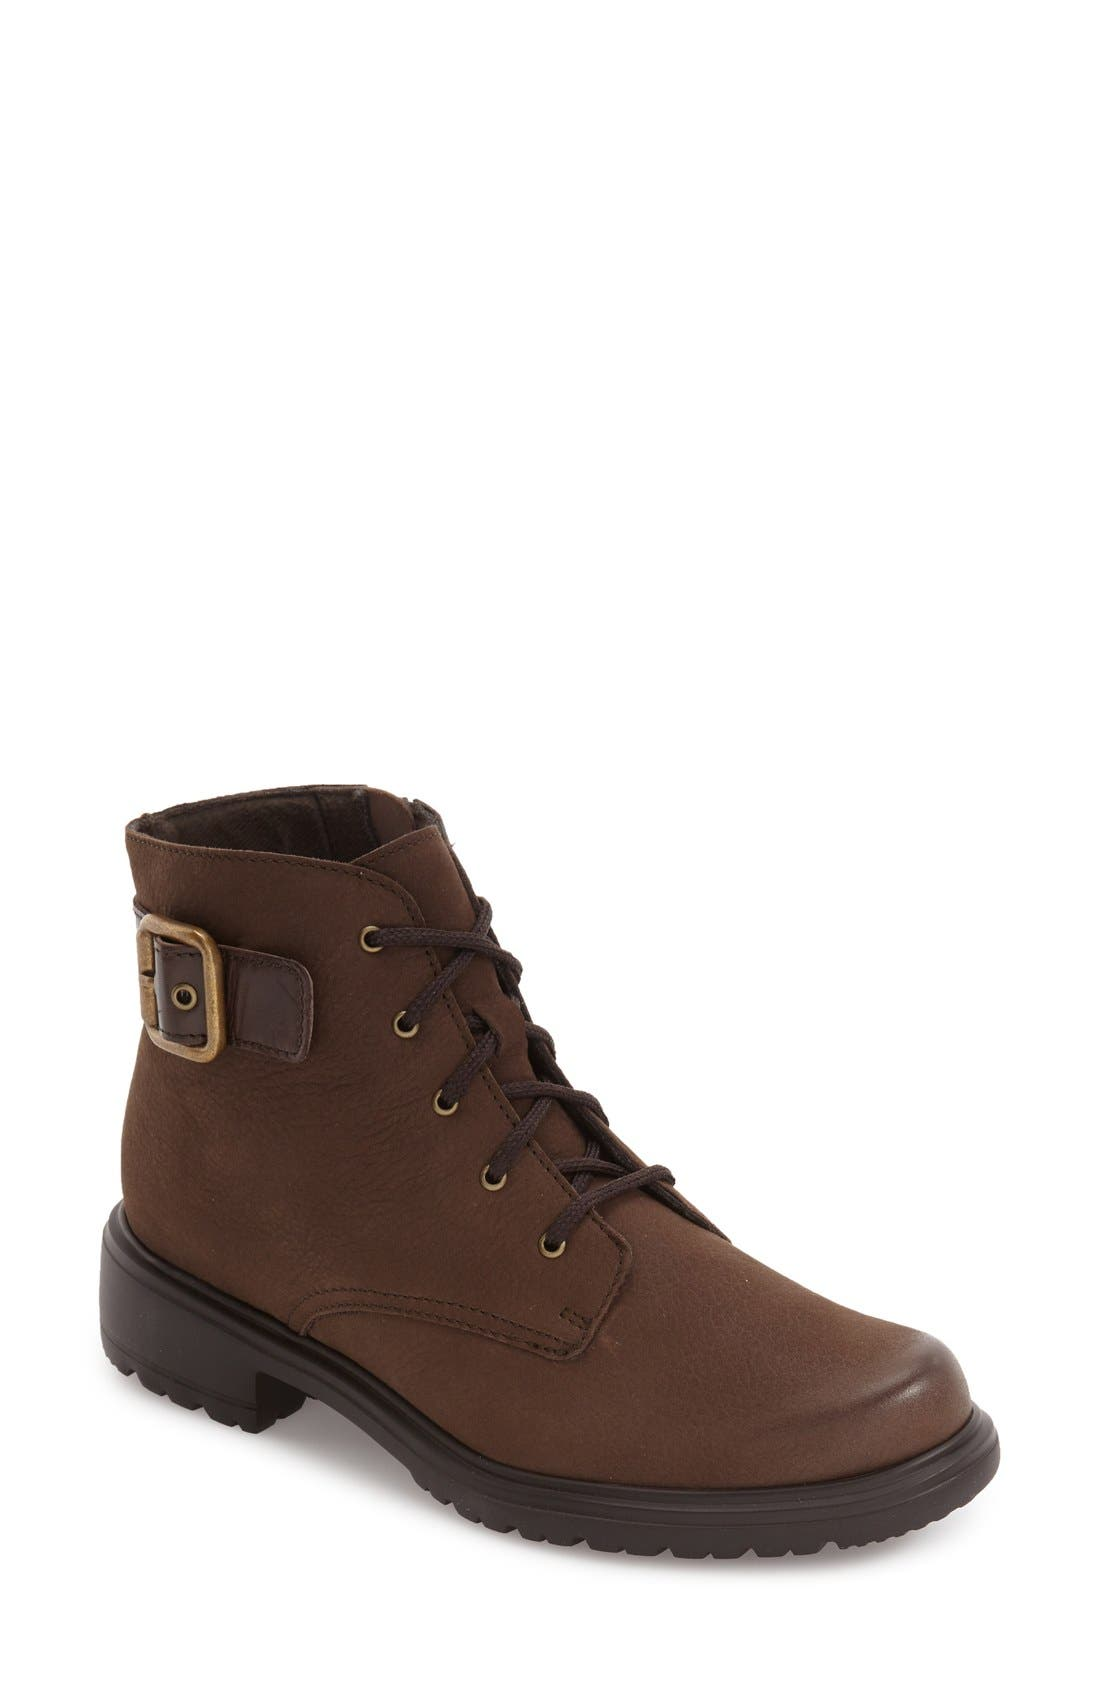 Bradley Water Resistant Boot,                             Main thumbnail 1, color,                             Brown Tumbled Nubuck Leather